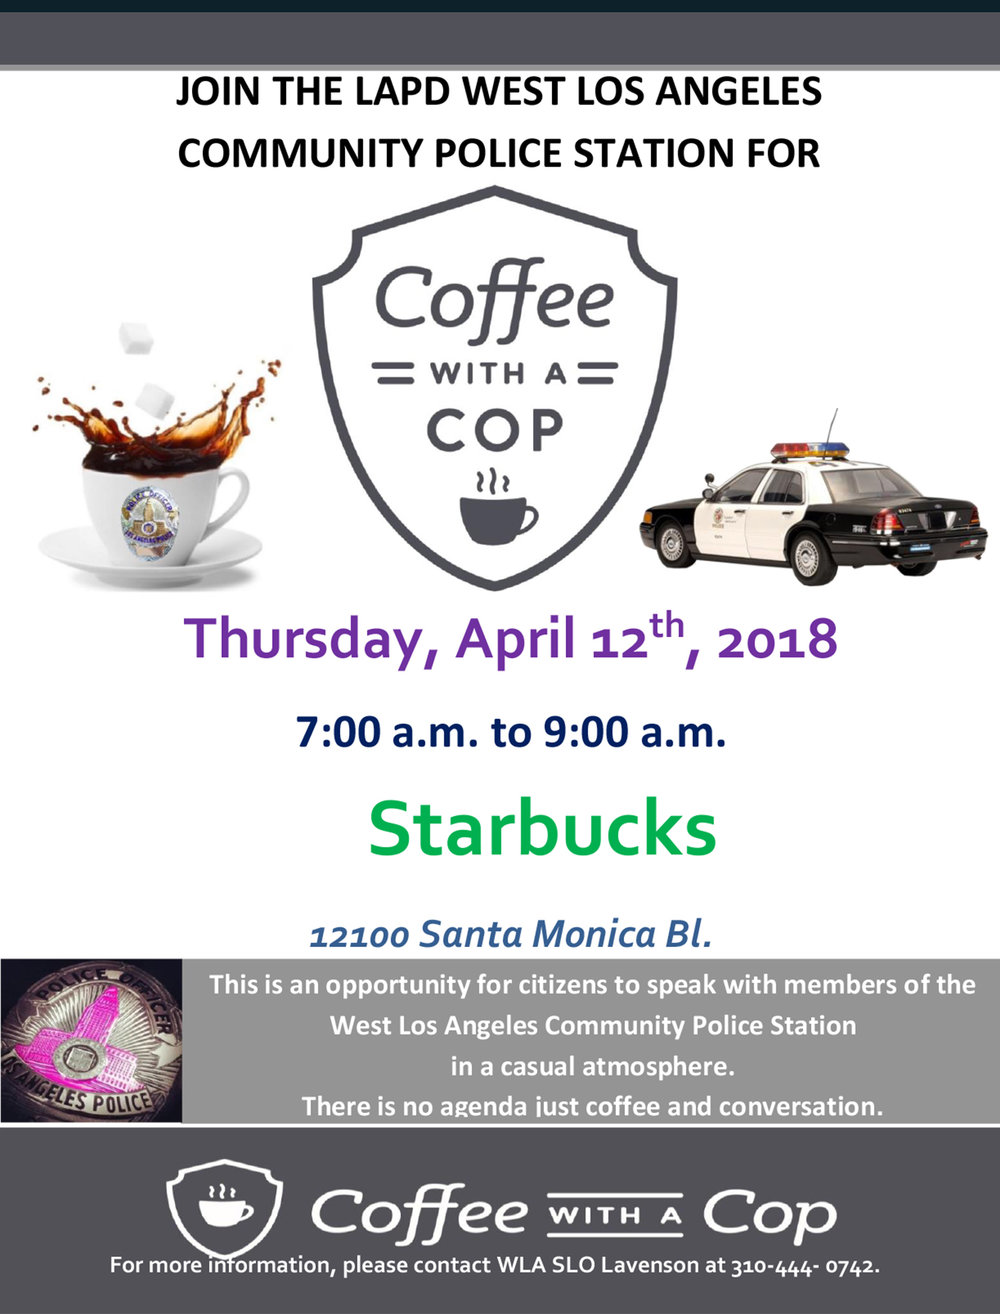 COFFEE WITH A COP 2 SLO53.jpg